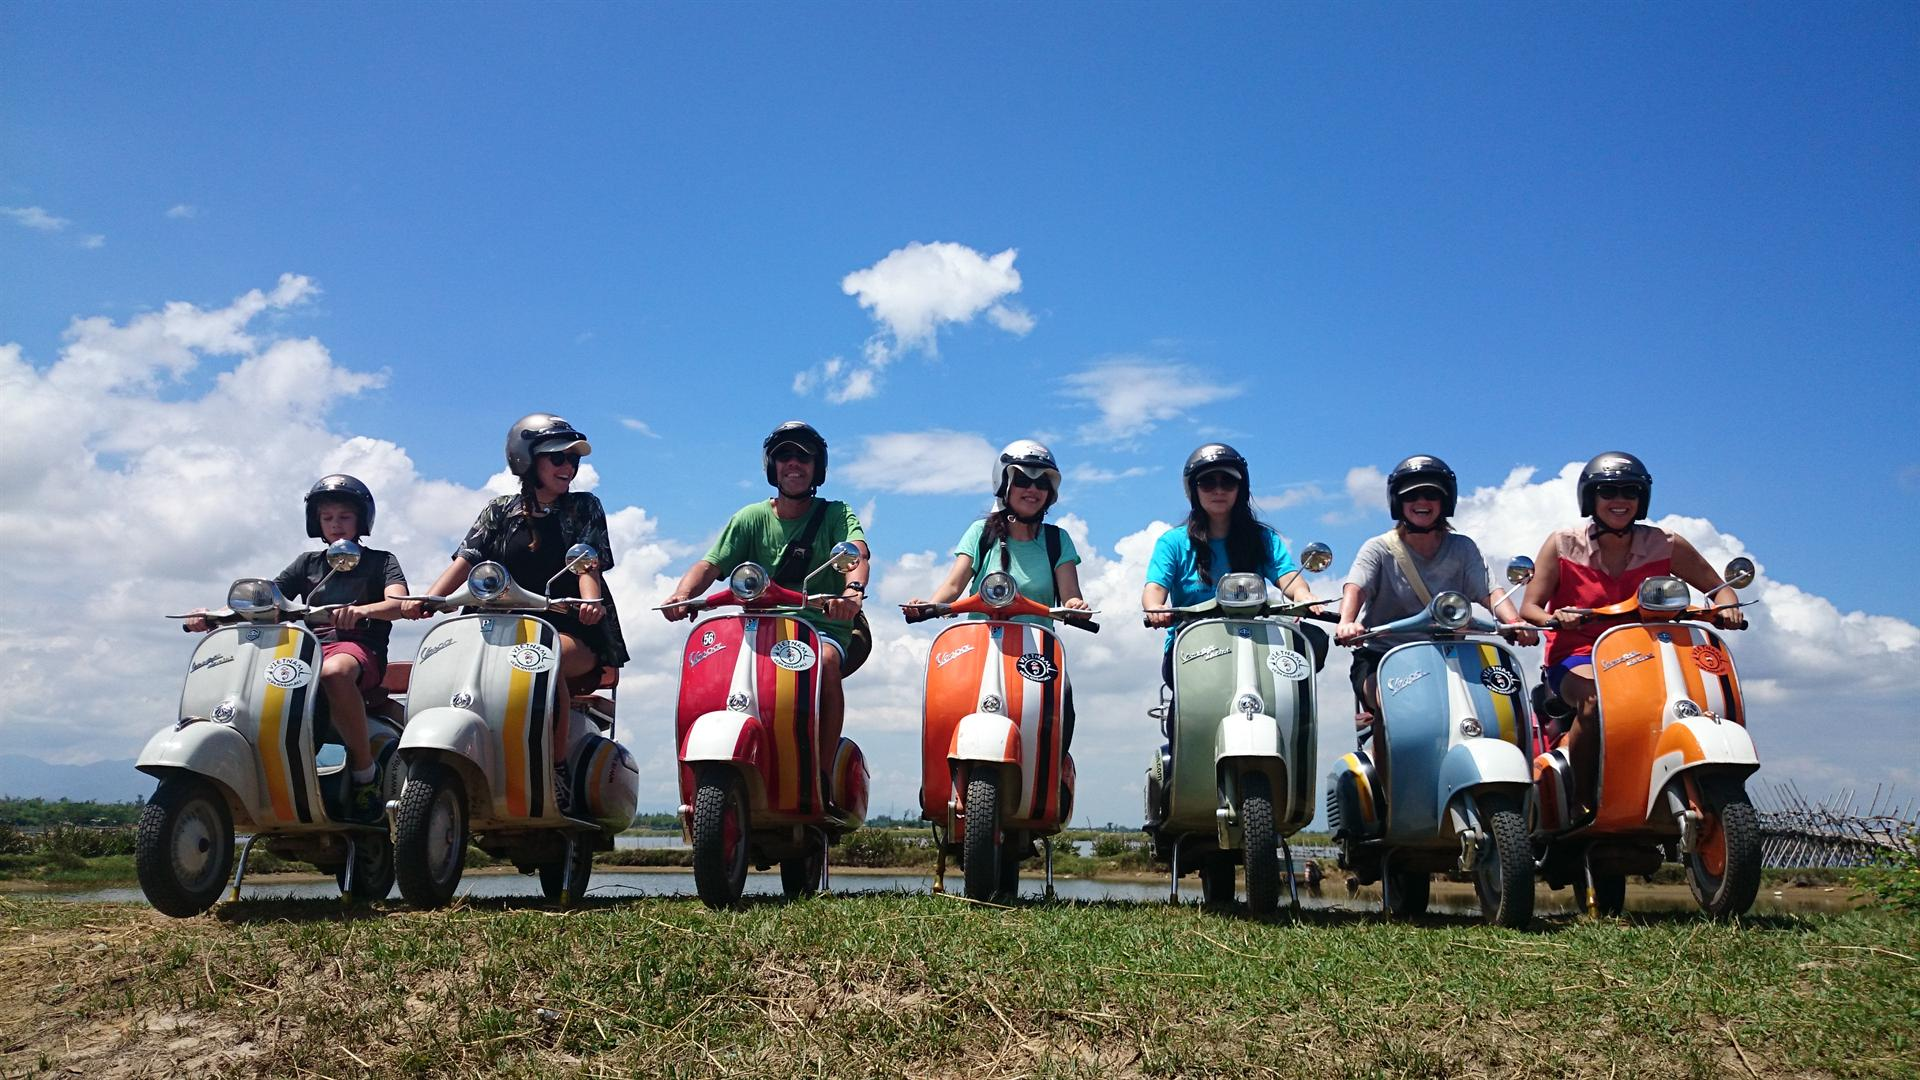 Vespa Tour and Foodie Trip